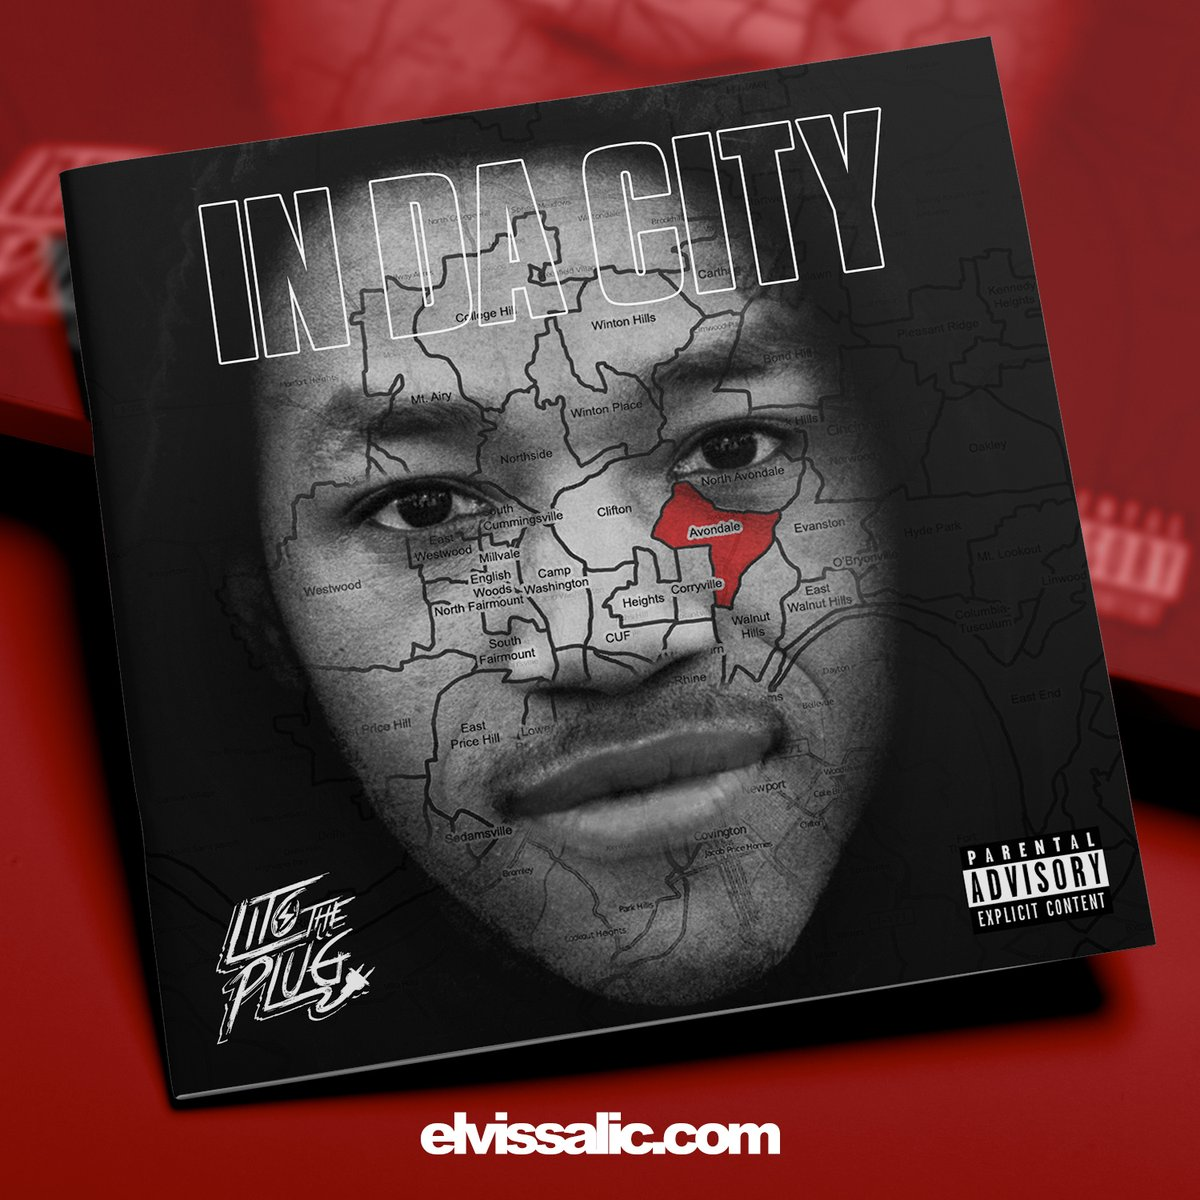 In Da City cover design  #graphic #design #graphicdesign #cover #hiphop #music #artist #photoshop #designoftheday #musicdesign #coveroftheday #adobephotoshop #coverdesign #singlecover #hiphopartist https://t.co/0iE6Rzxwel